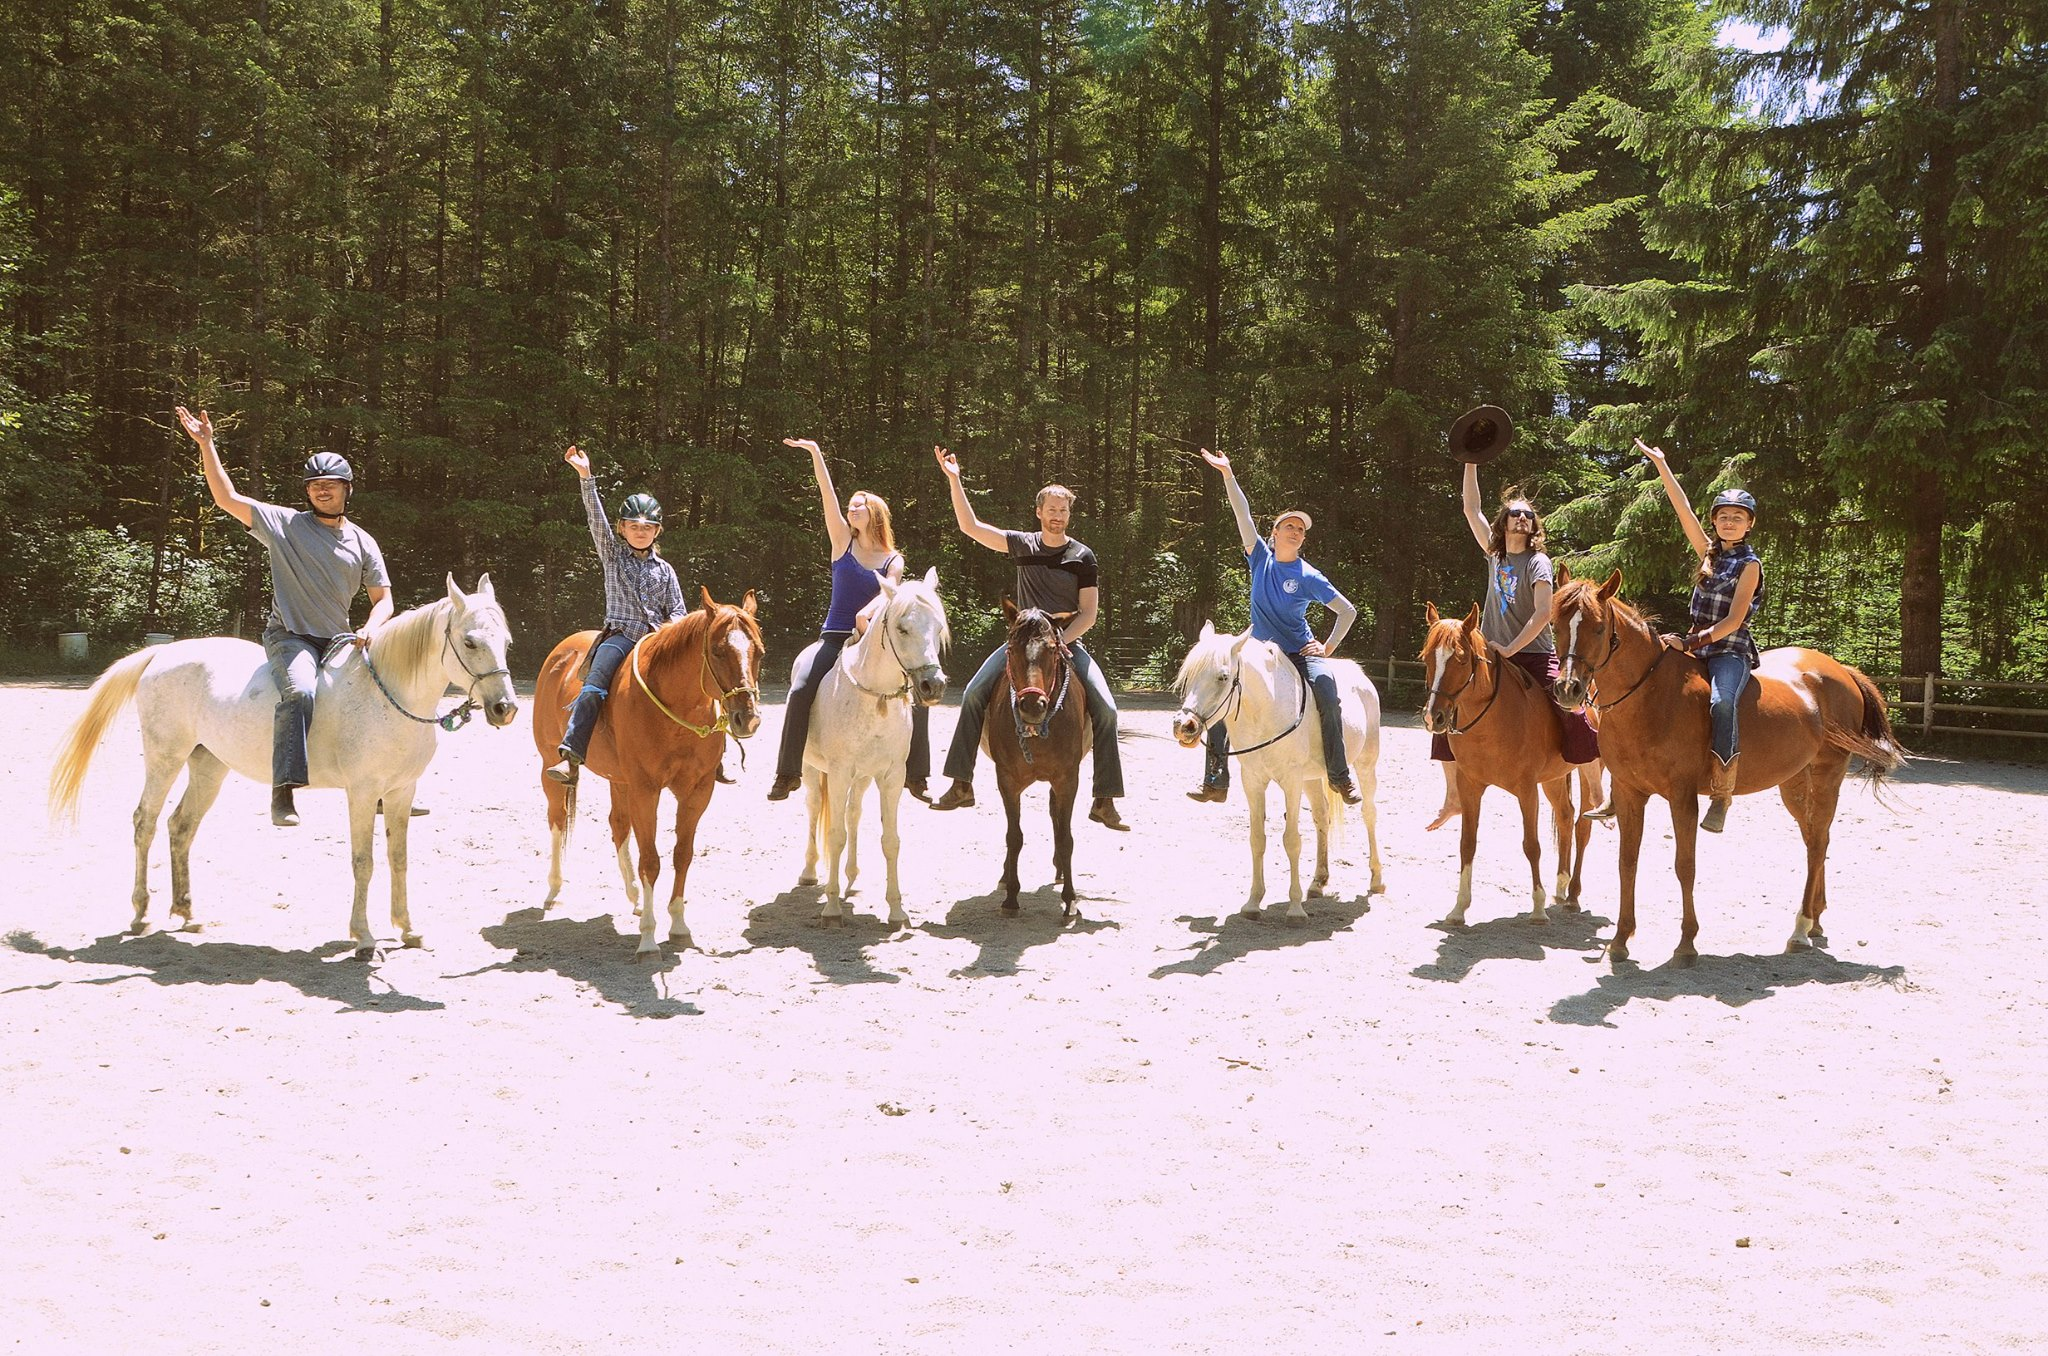 Riding Packages are available for riders who have taken several lessons at the ranch and are above the very beginner level. Packages are month to month. You can ride using any of the ranch facilities